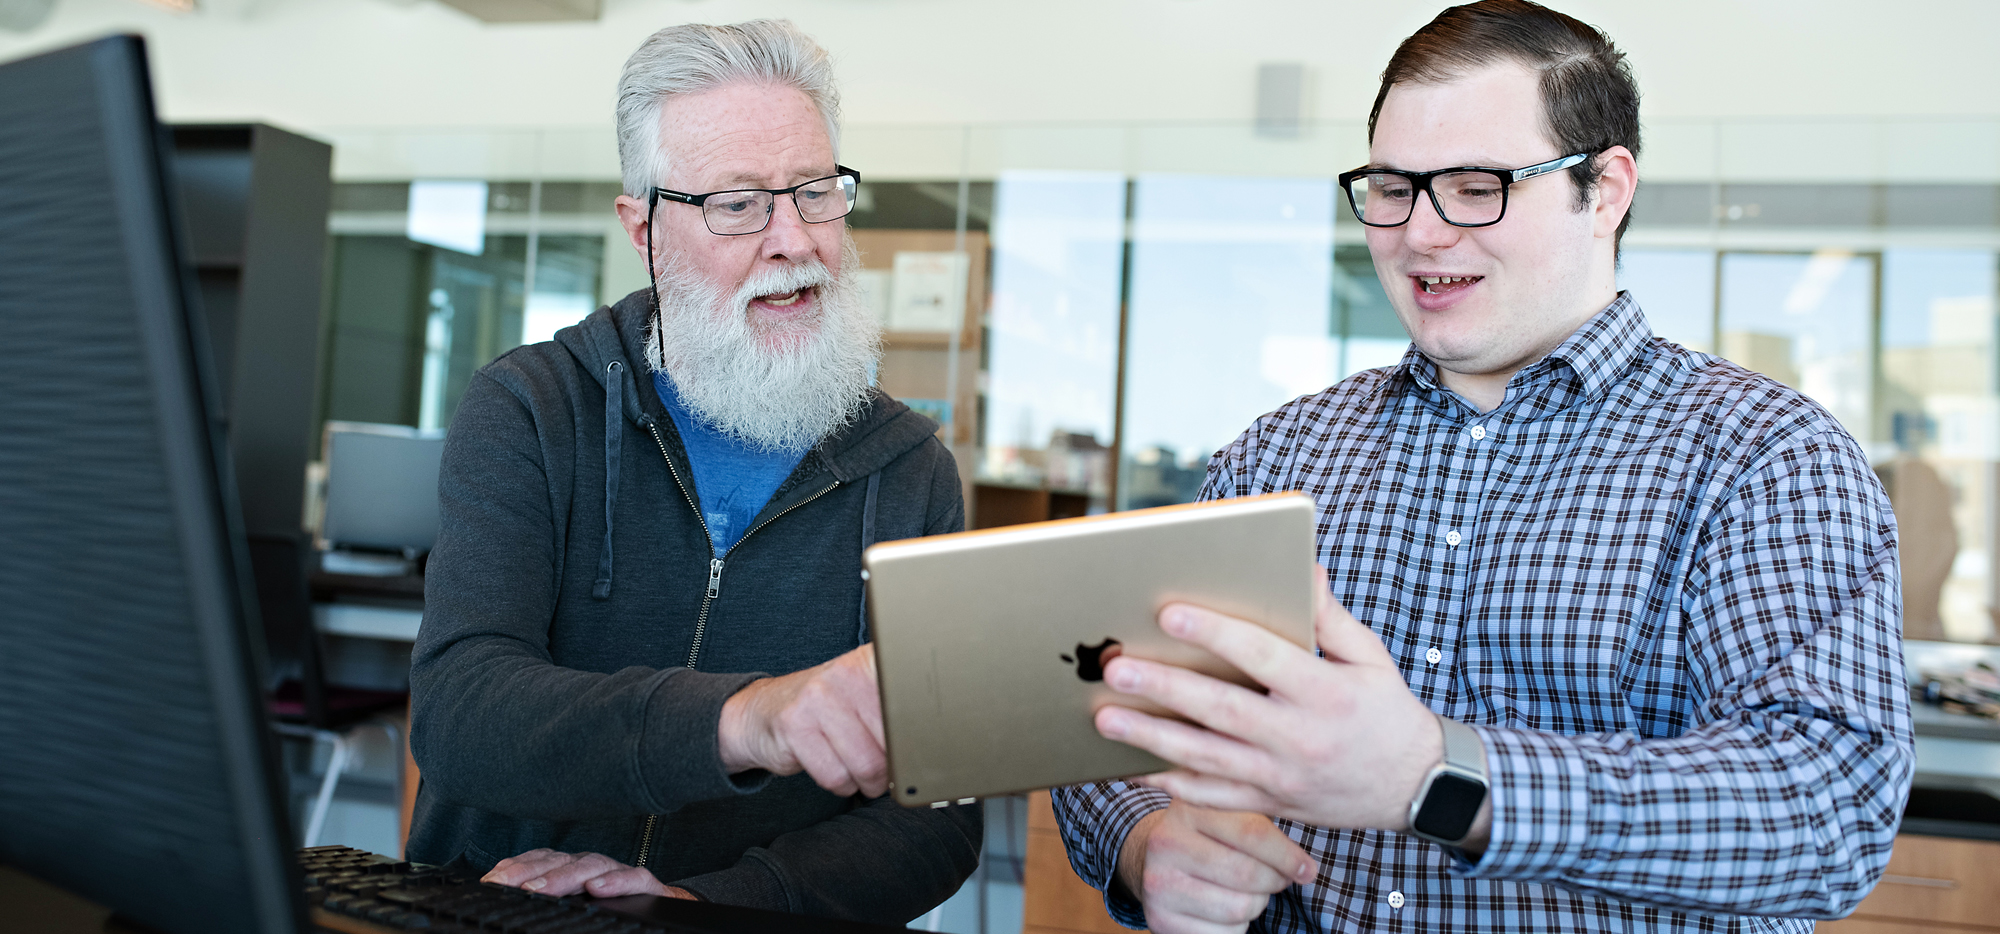 Colin holding a tablet and gesturing to it while an older adult with glasses watches